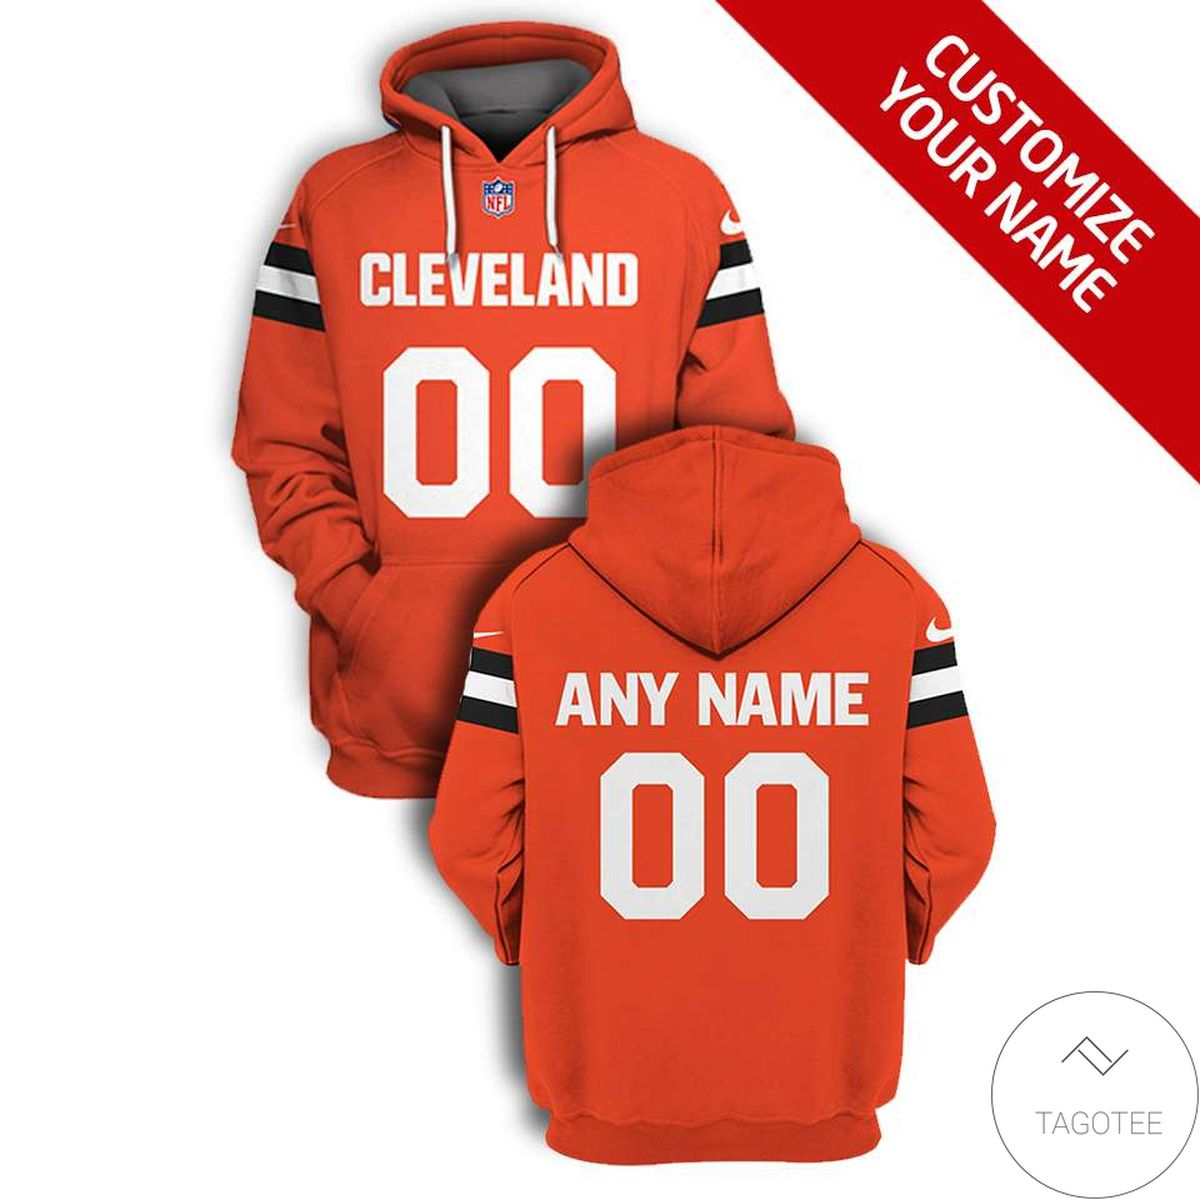 Limited Edition Personalized Cleveland Branded Unisex Hoodie